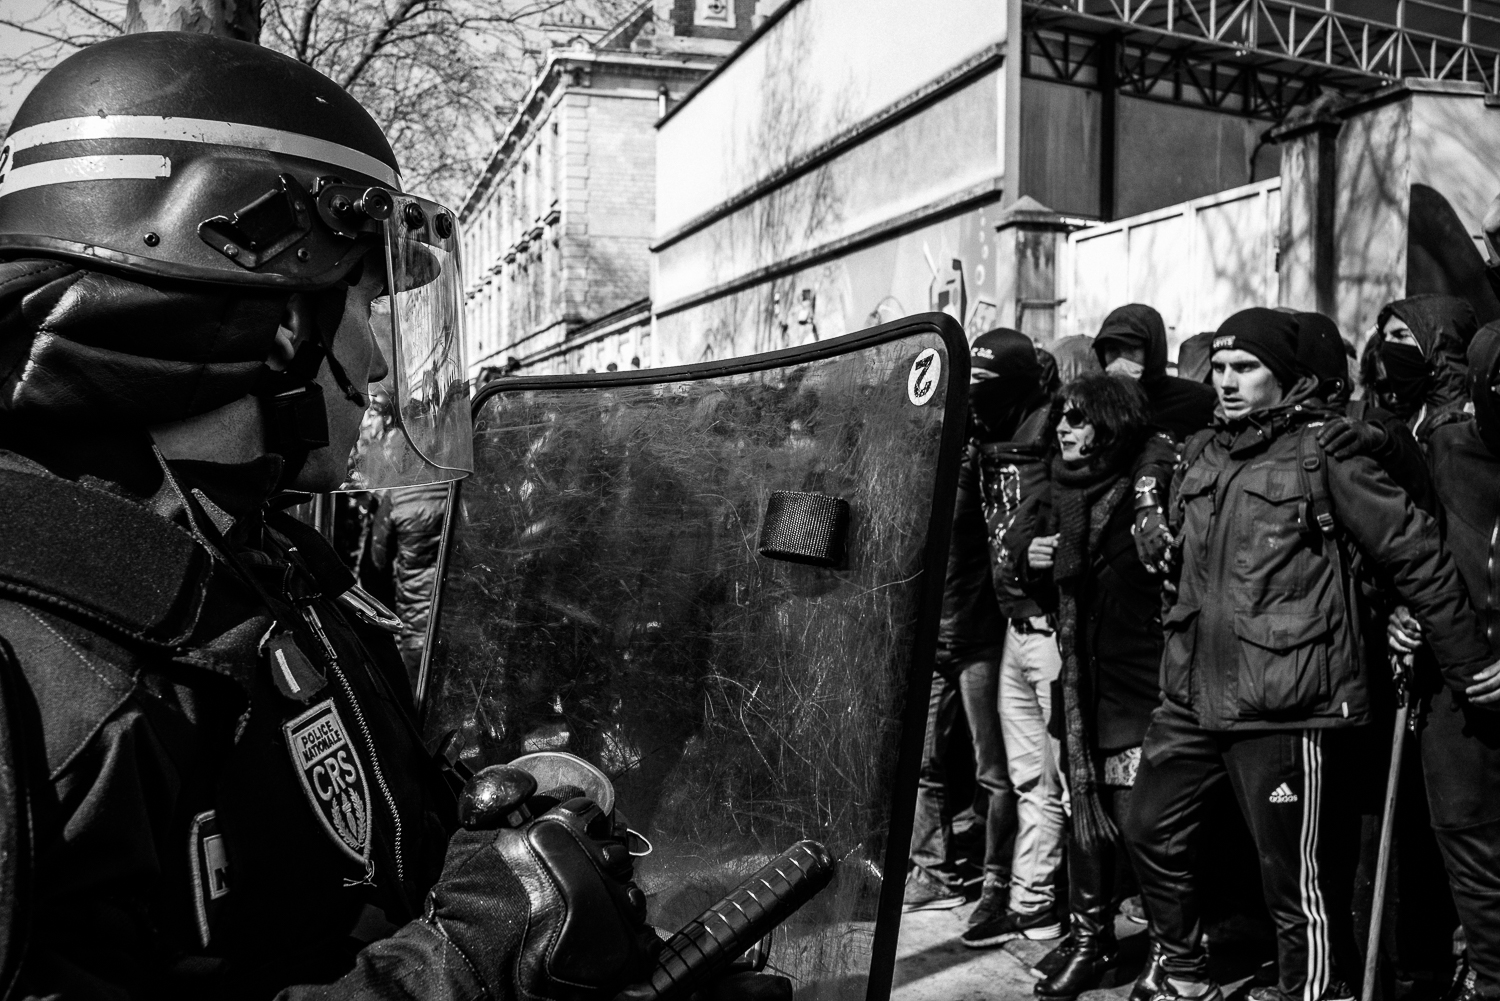 Riot police officers confronting the protestors, 5th April 2016.